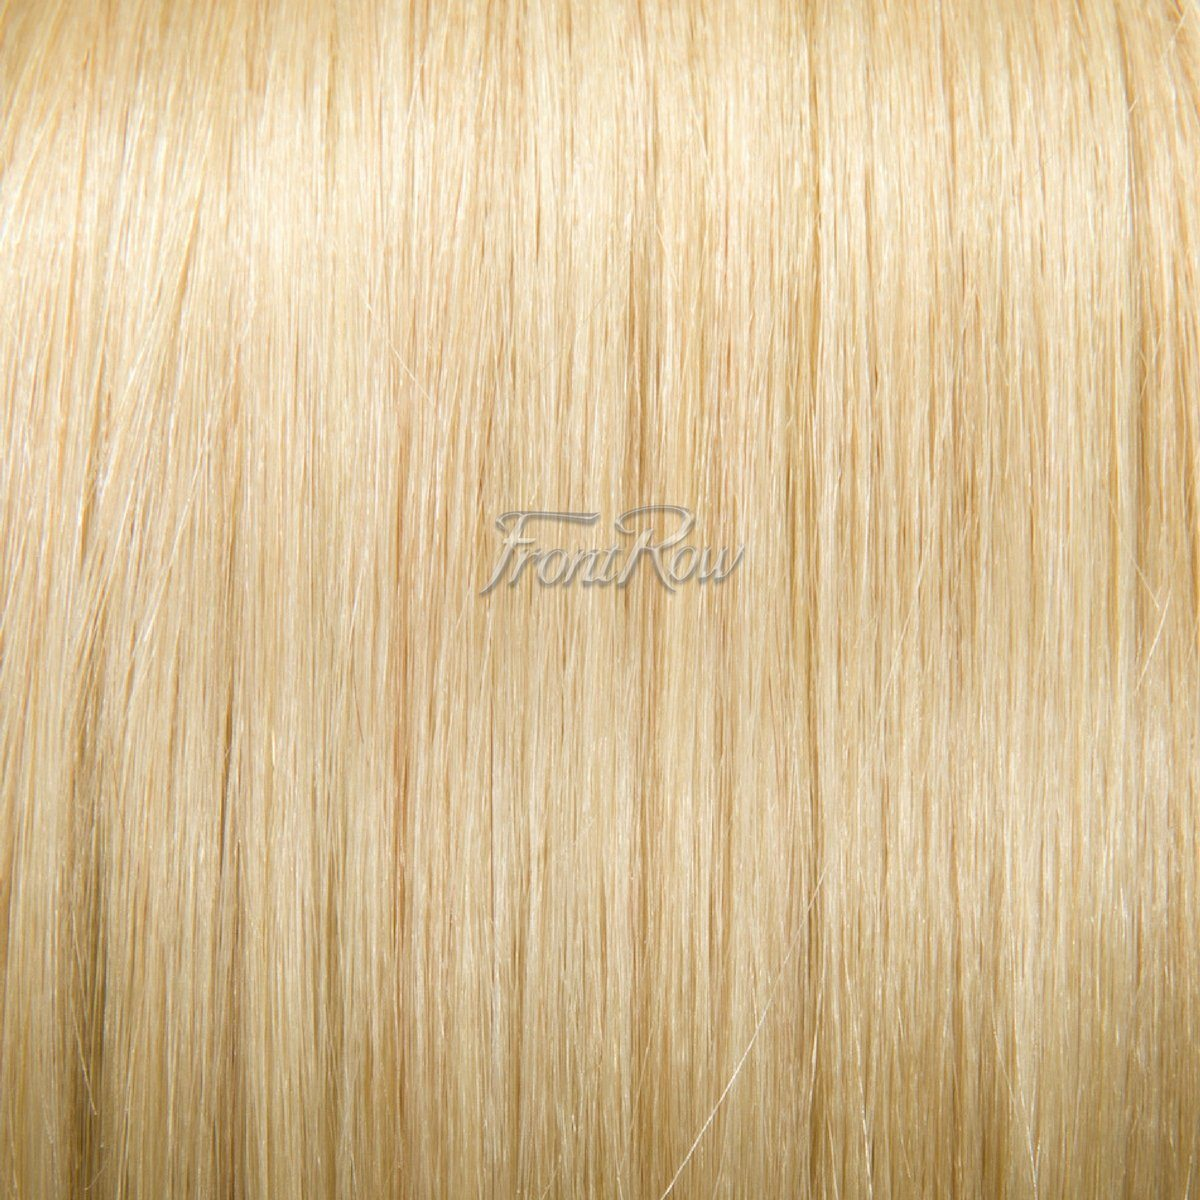 Bleach Blonde 20inch Tapered Ends Clip-ins